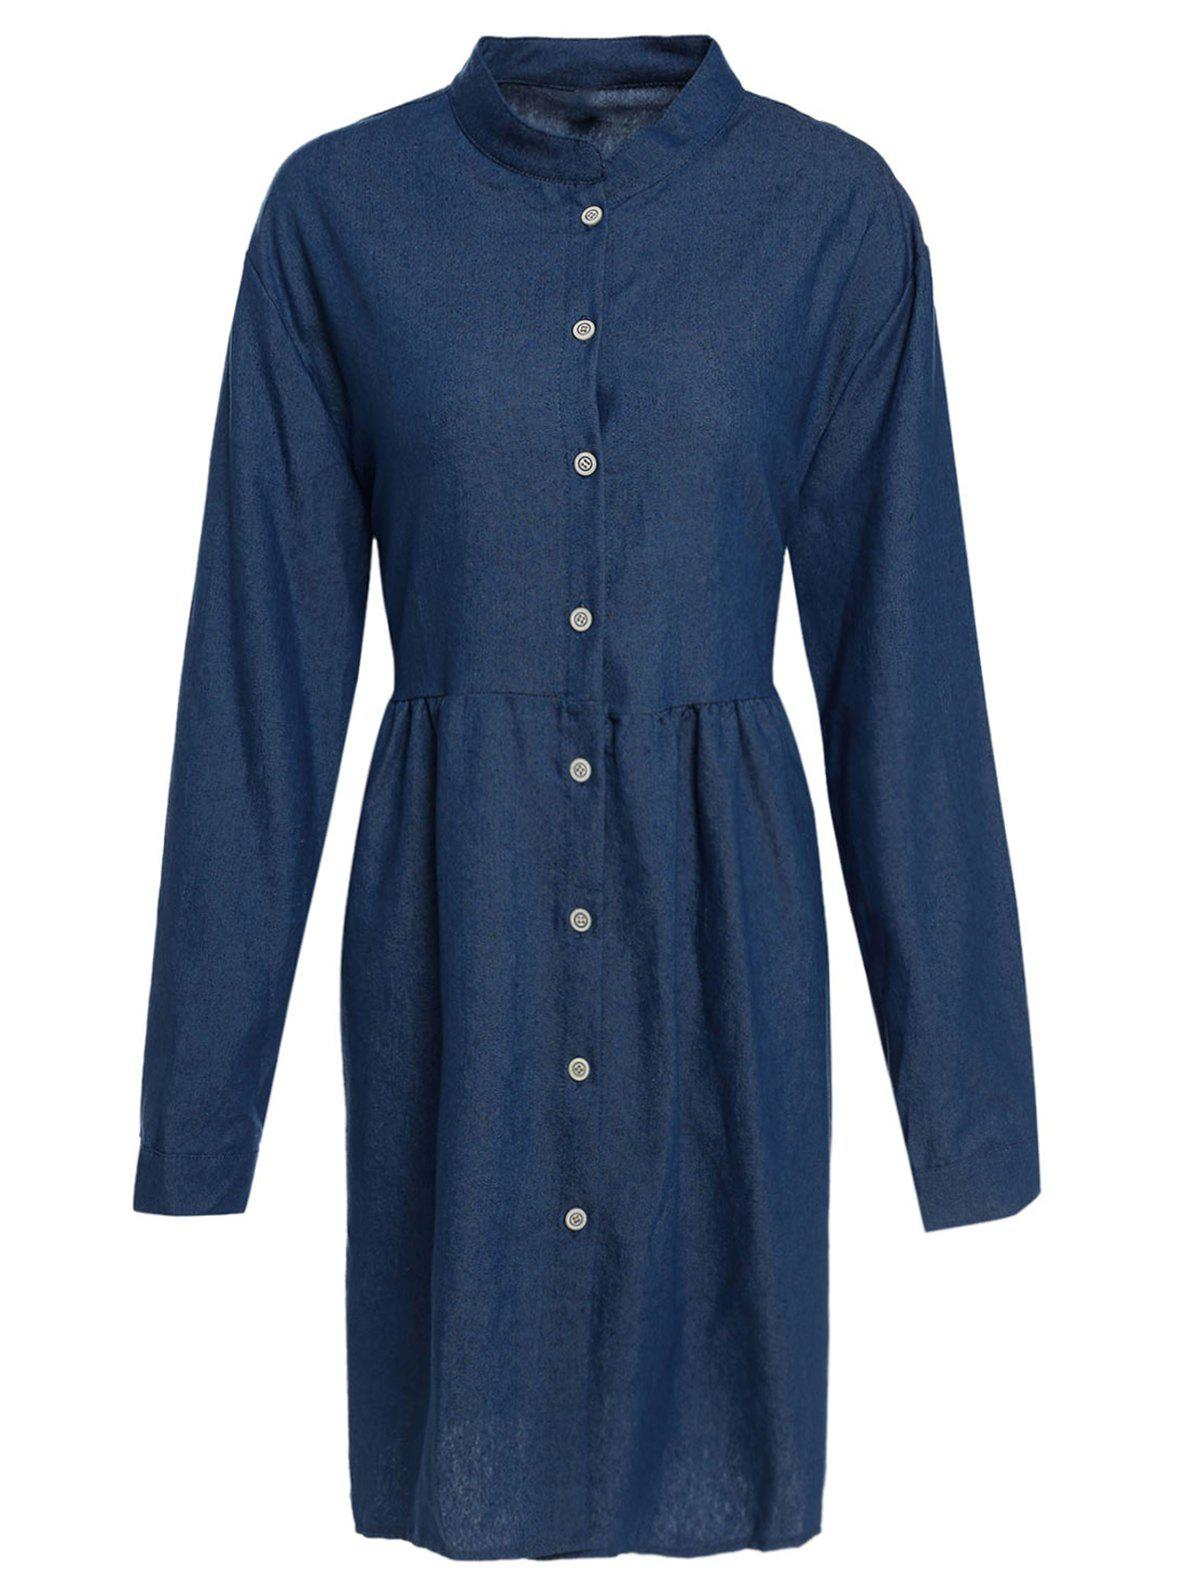 Fresh Style Solid Color Stand Collar Loose Denim Shirt Dress For Women - BLUE 3XL